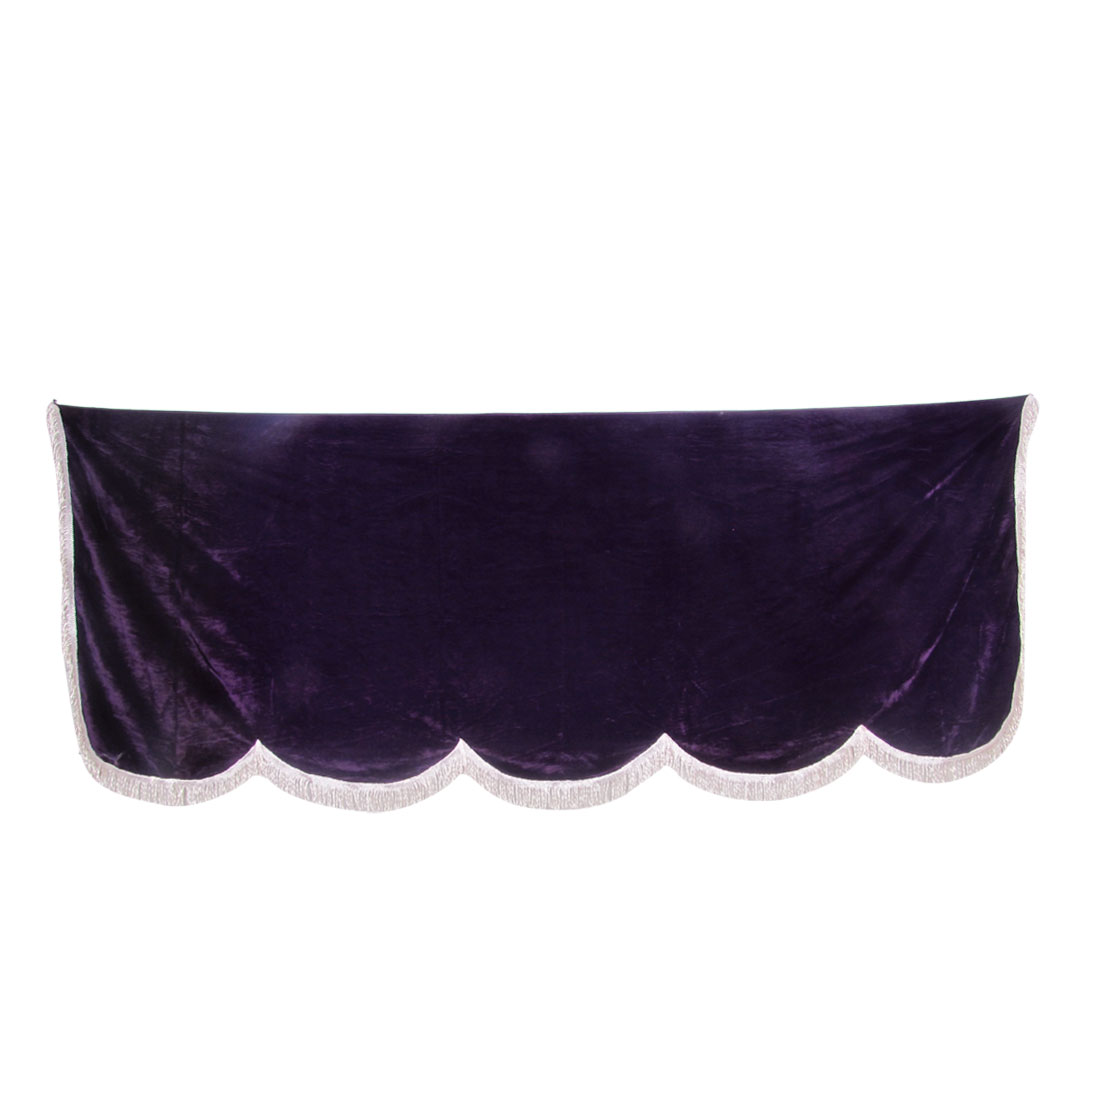 "Tassel Decor Scalloped Edge Purple Pleuche Piano Half Cover 70.8"" x 28.7"""